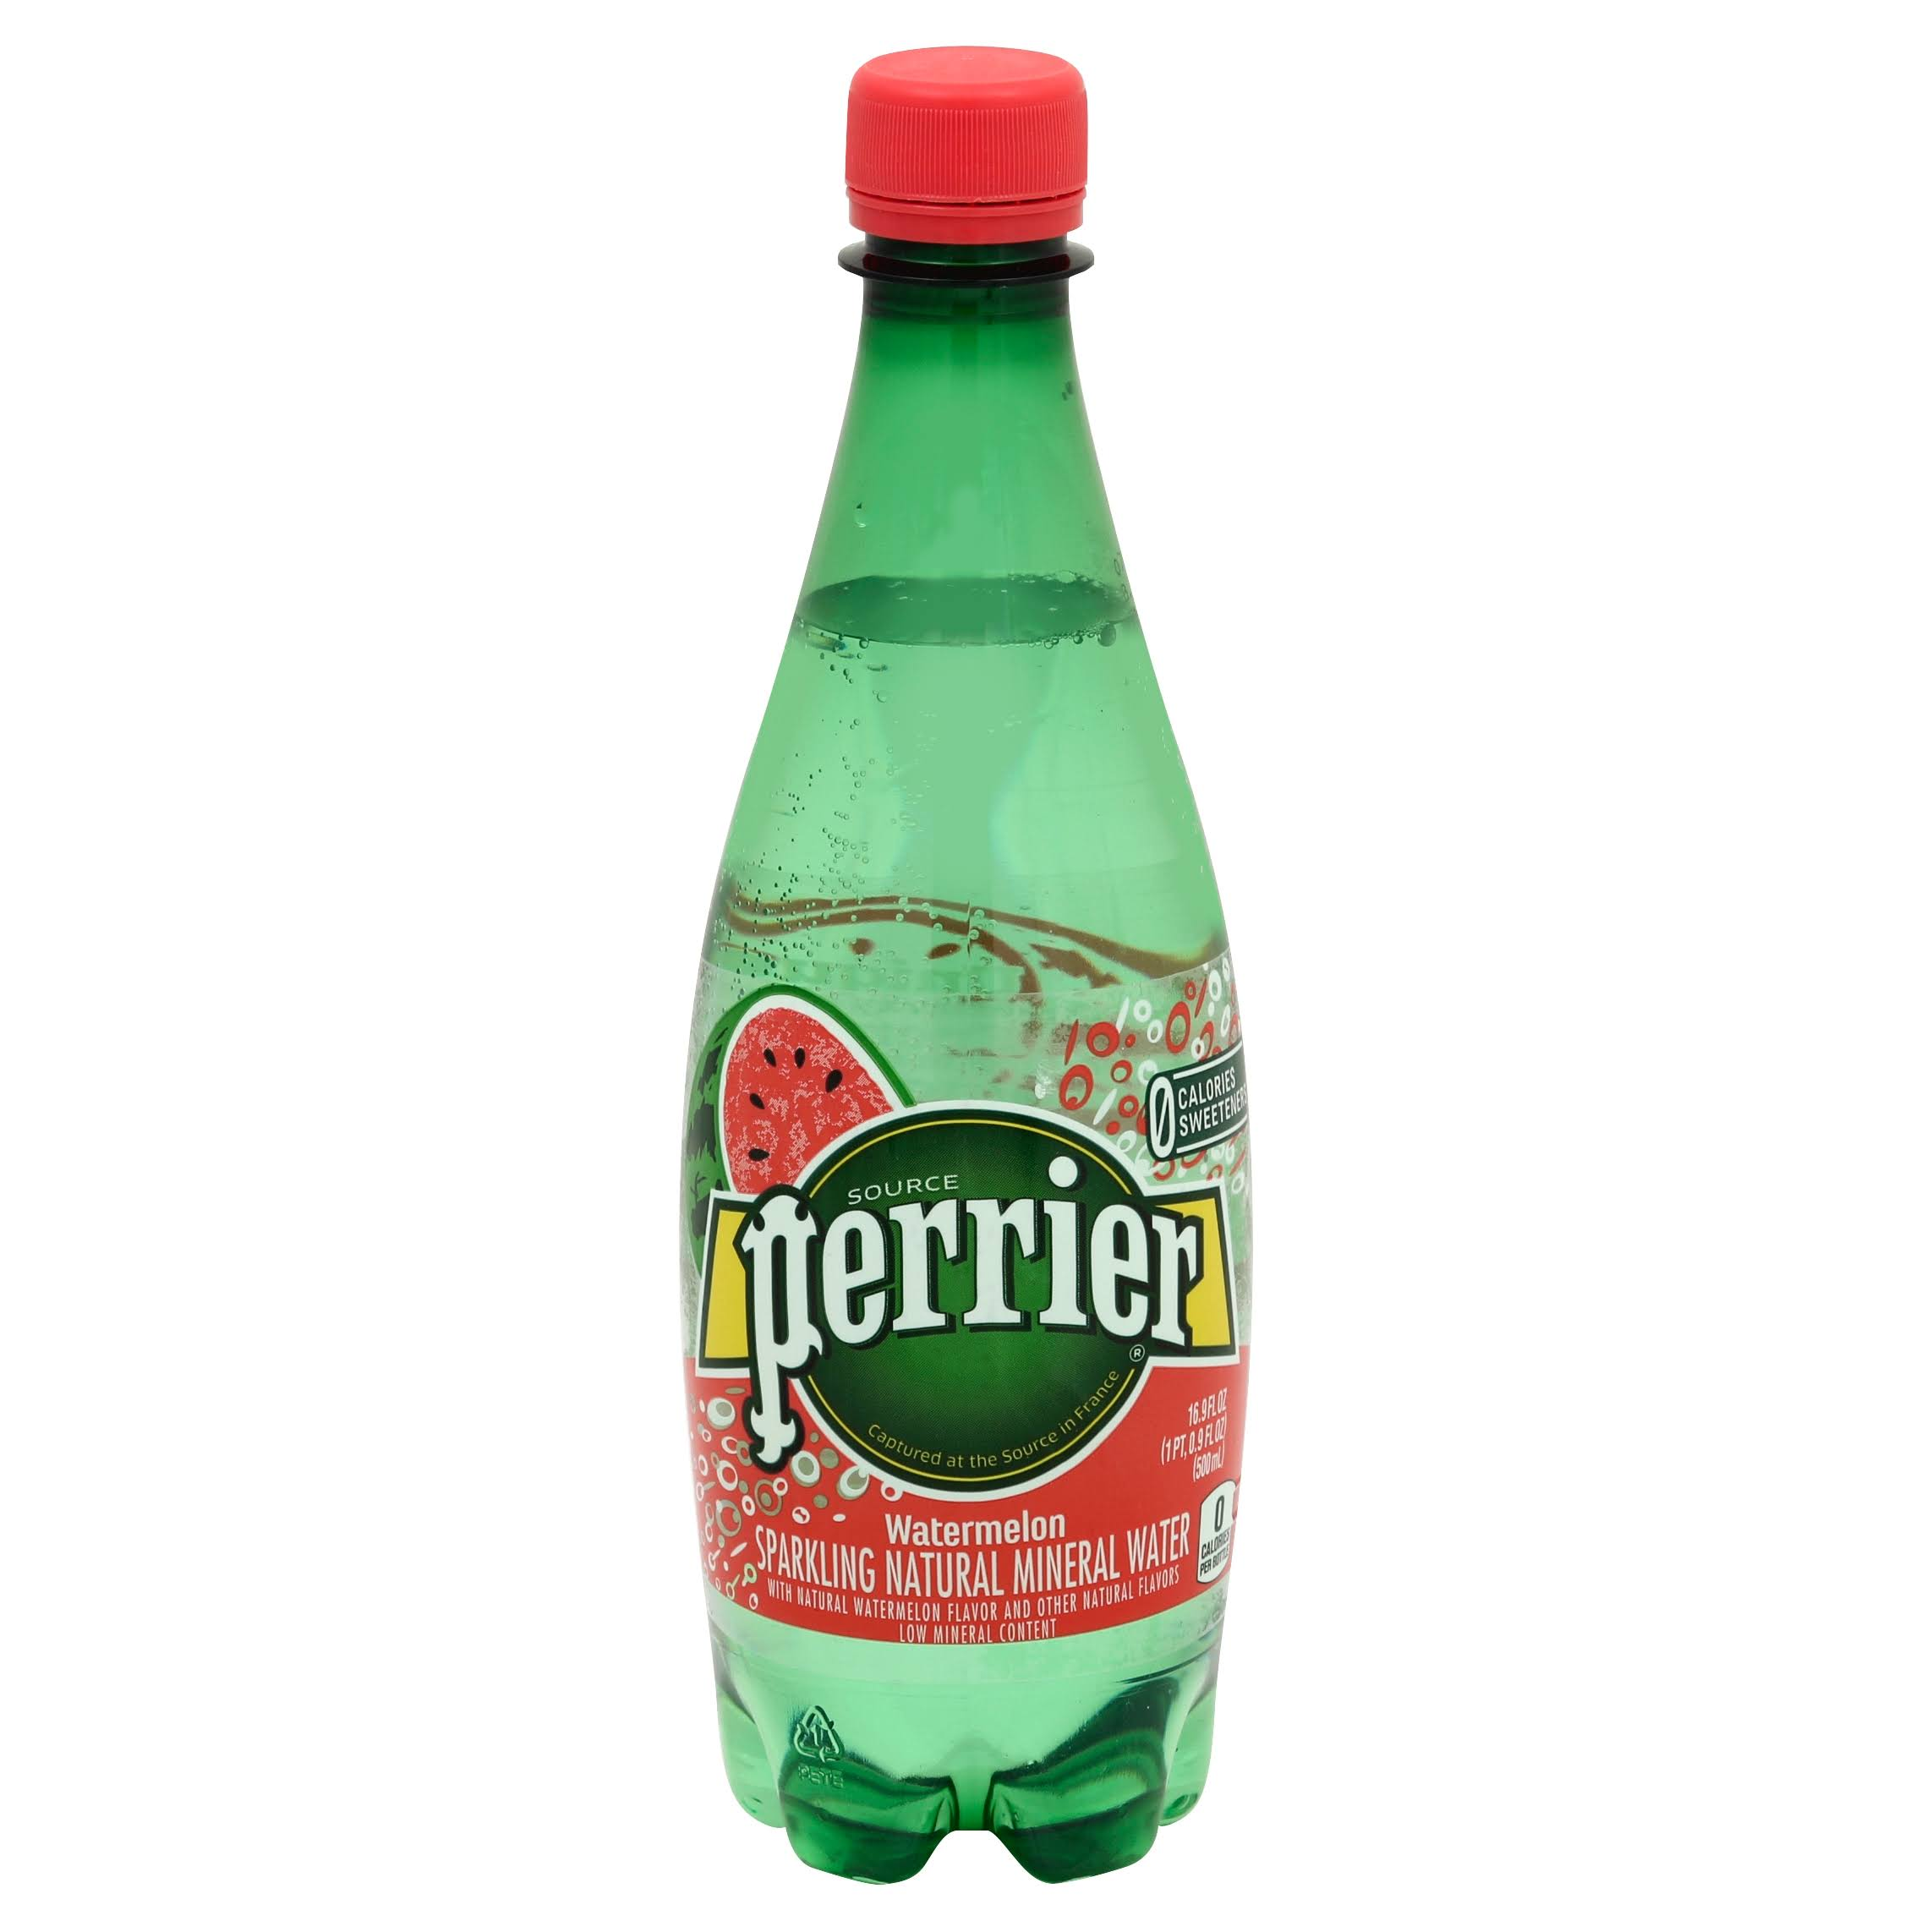 Perrier Hydro Mineral Water, Sparkling, Watermelon - 16.9 fl oz